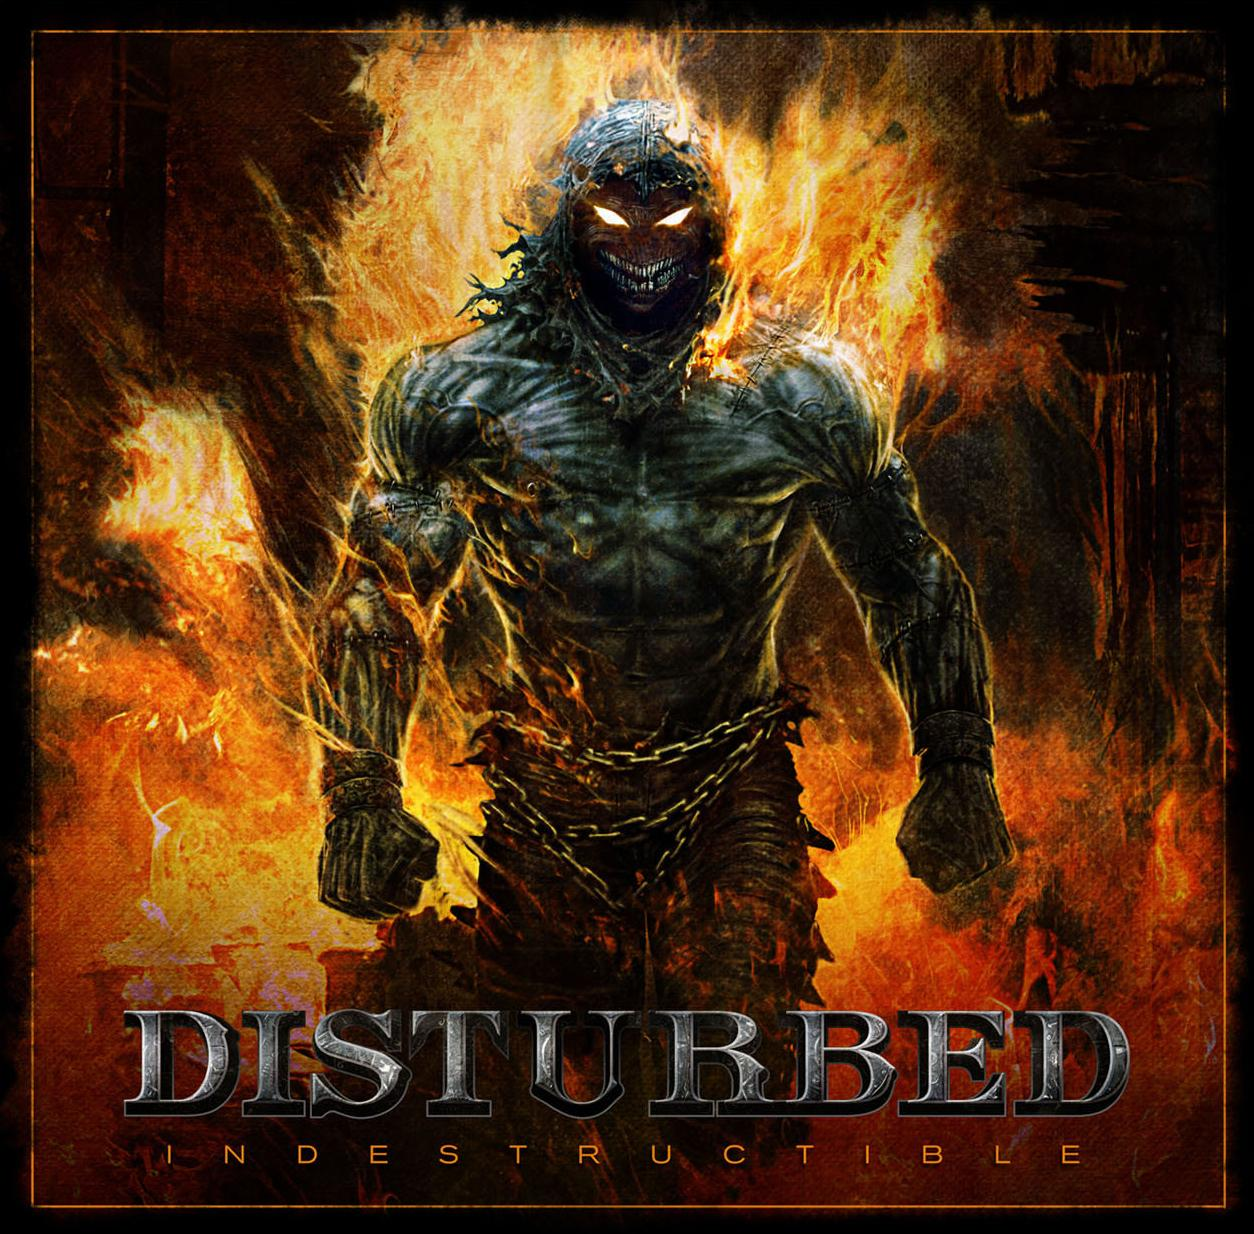 disturbed indestructible 2008.jpg